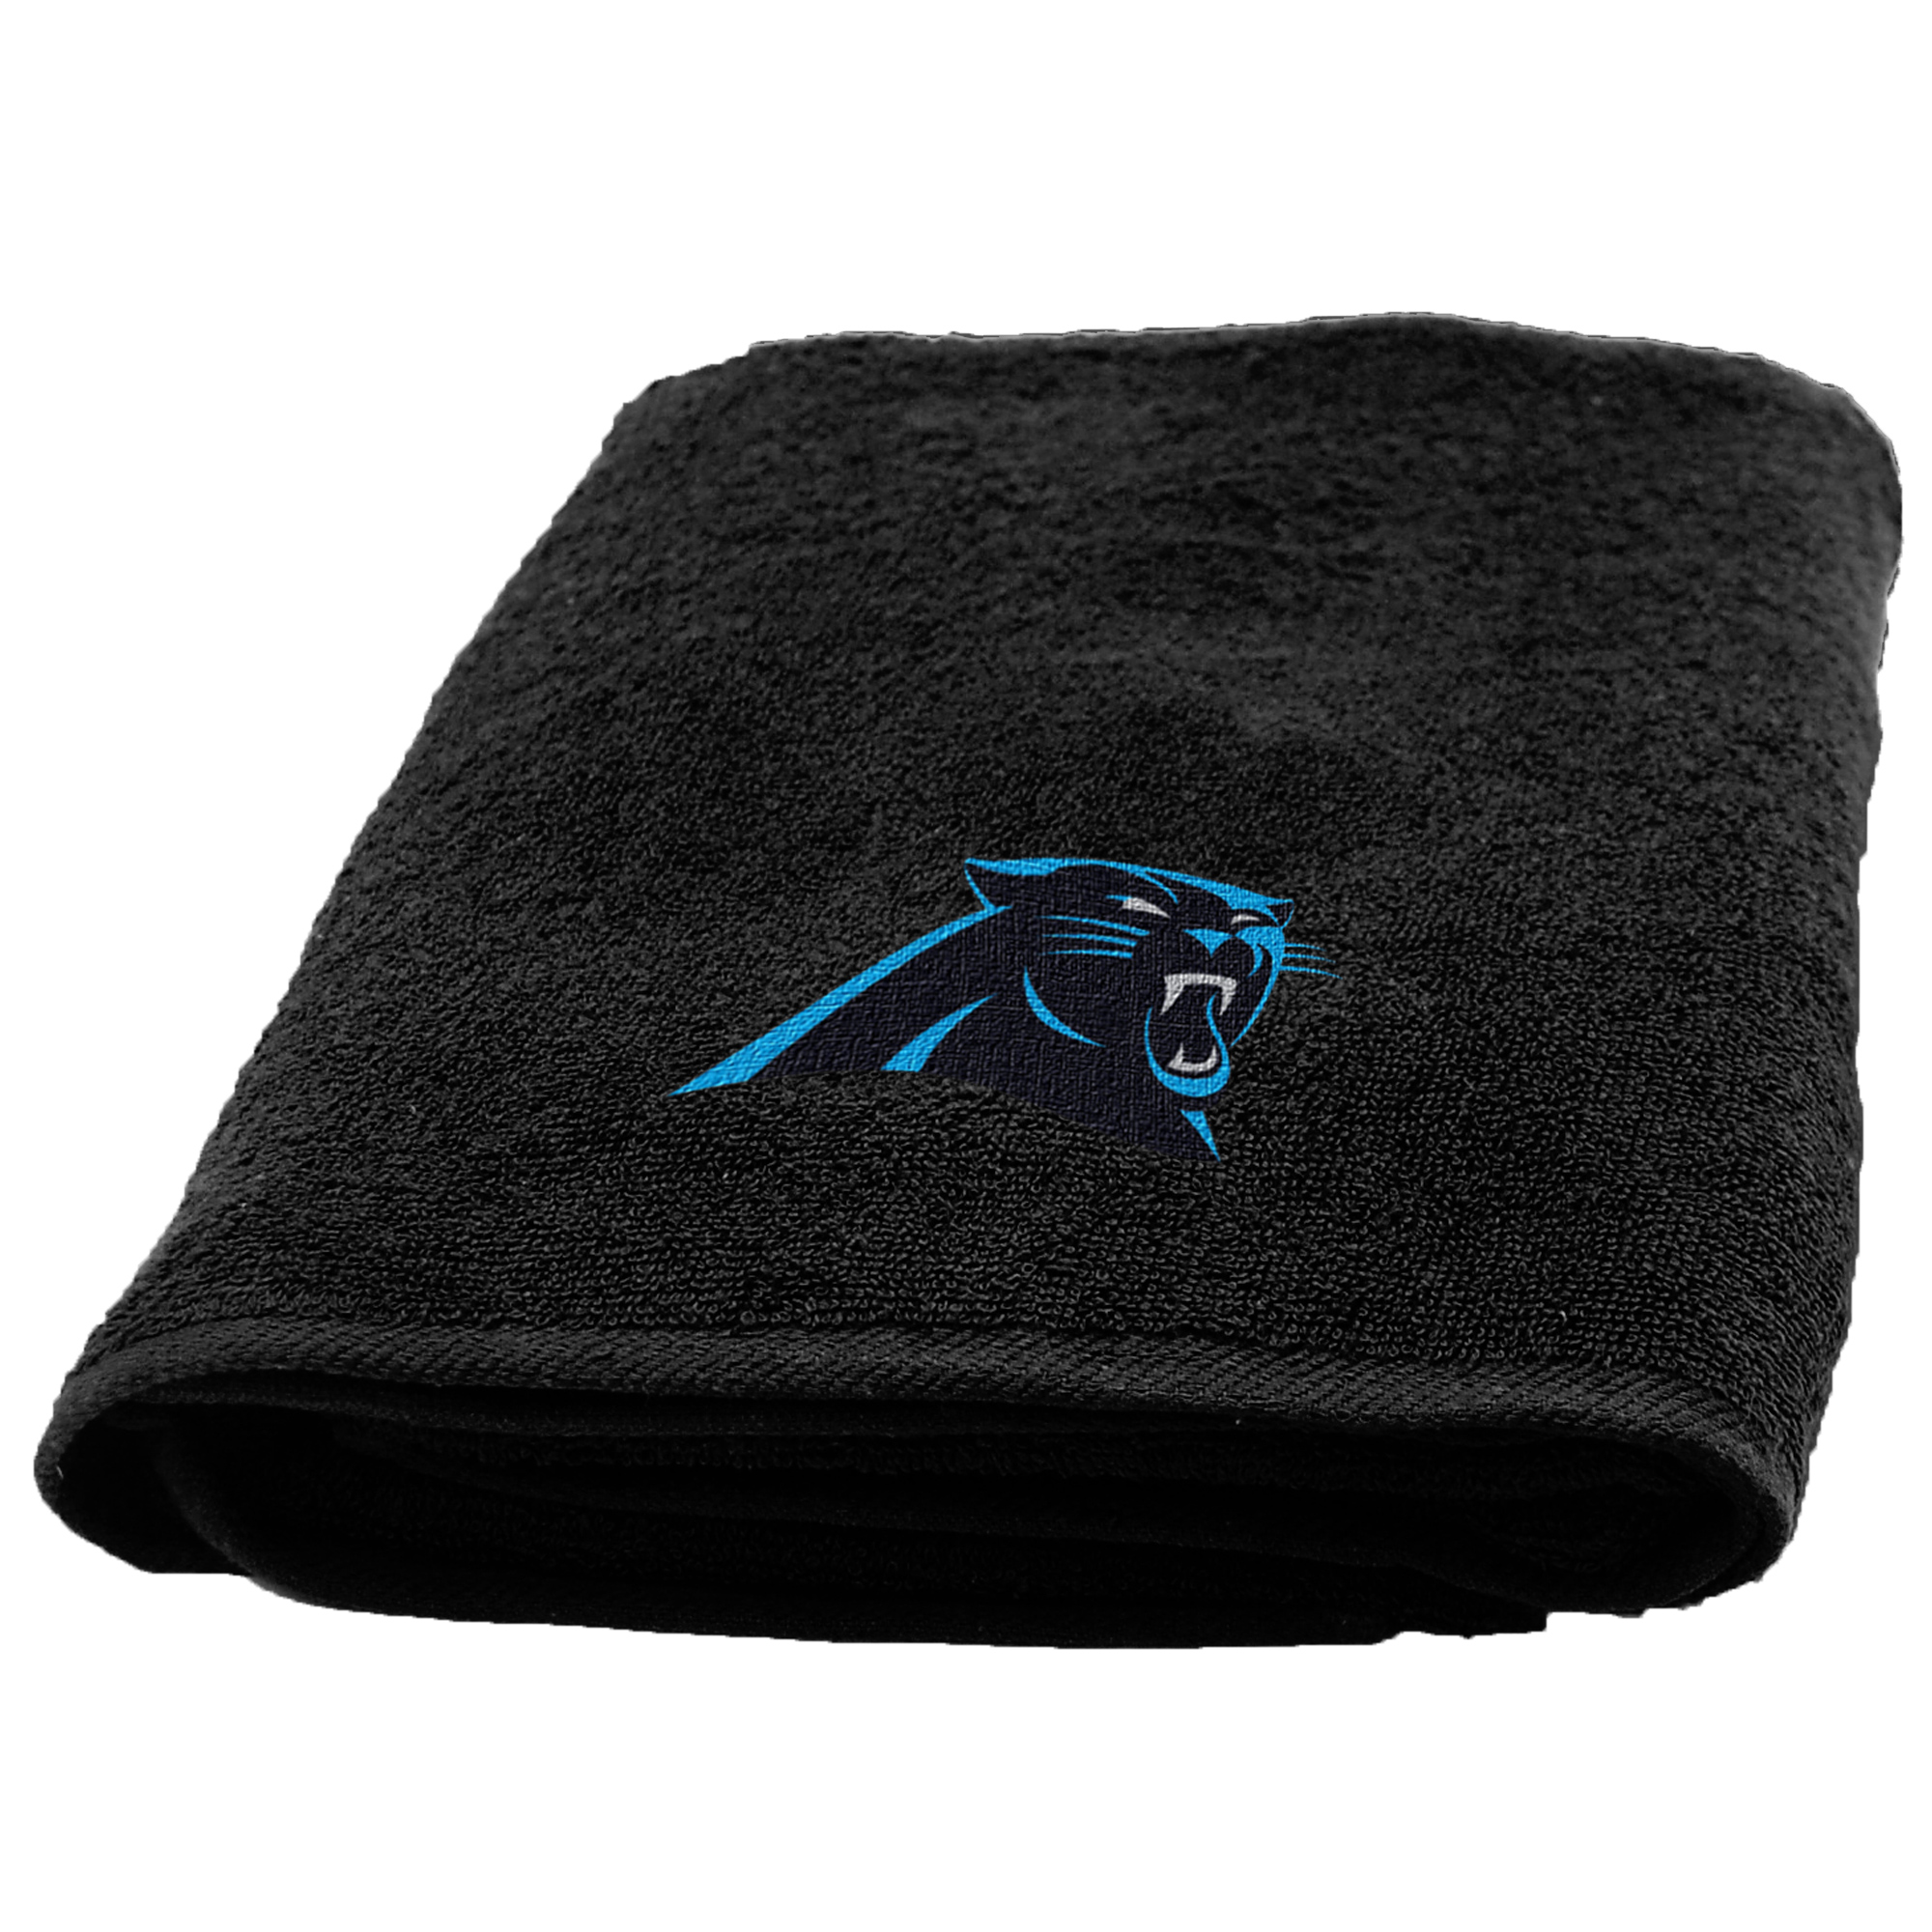 Carolina Panthers The Northwest Company 25'' x 50'' Applique Bath Towel - No Size